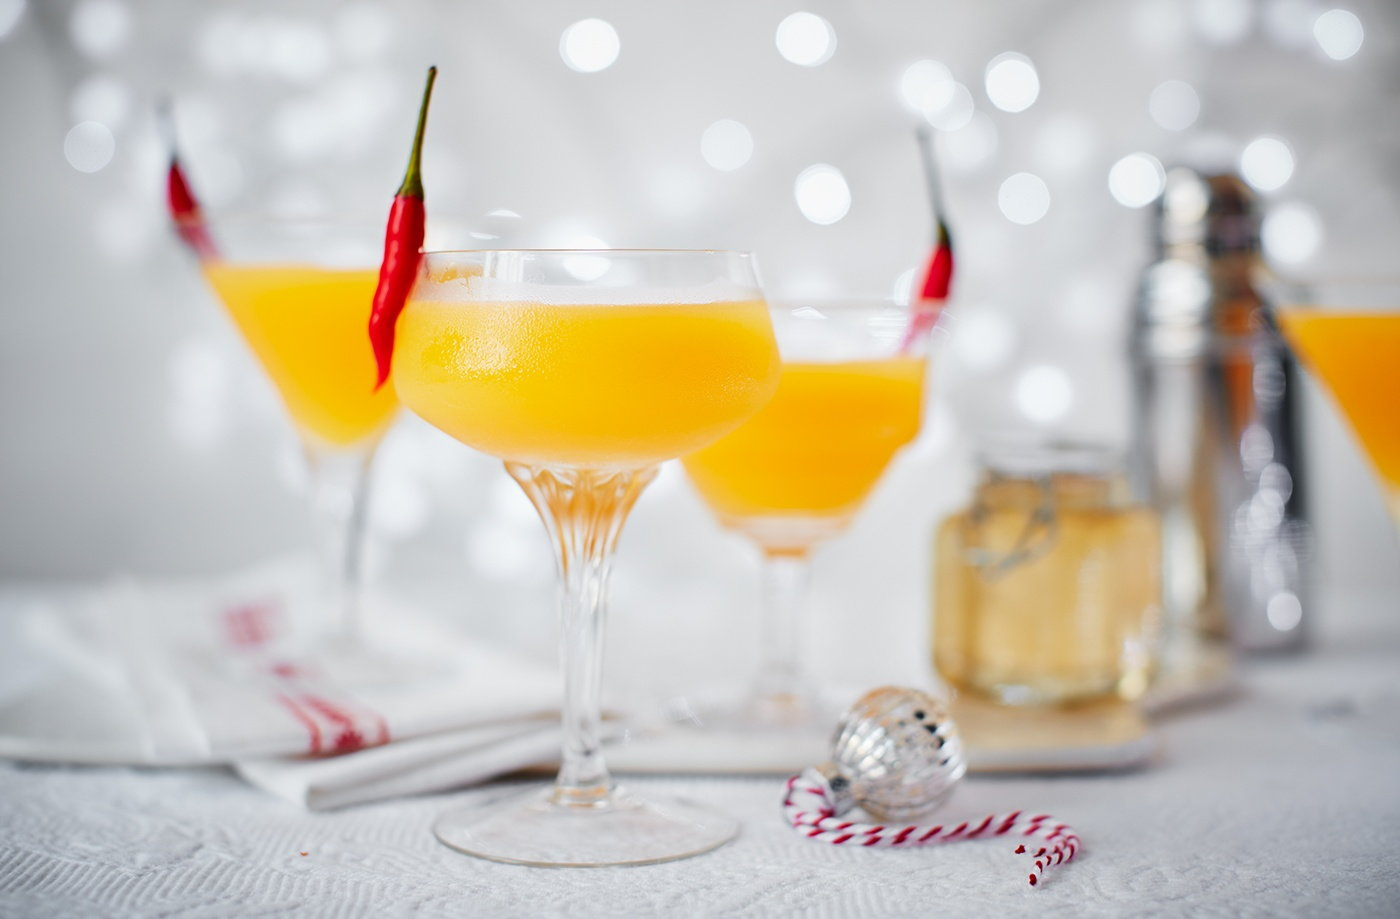 Chilli and mango margarita recipe